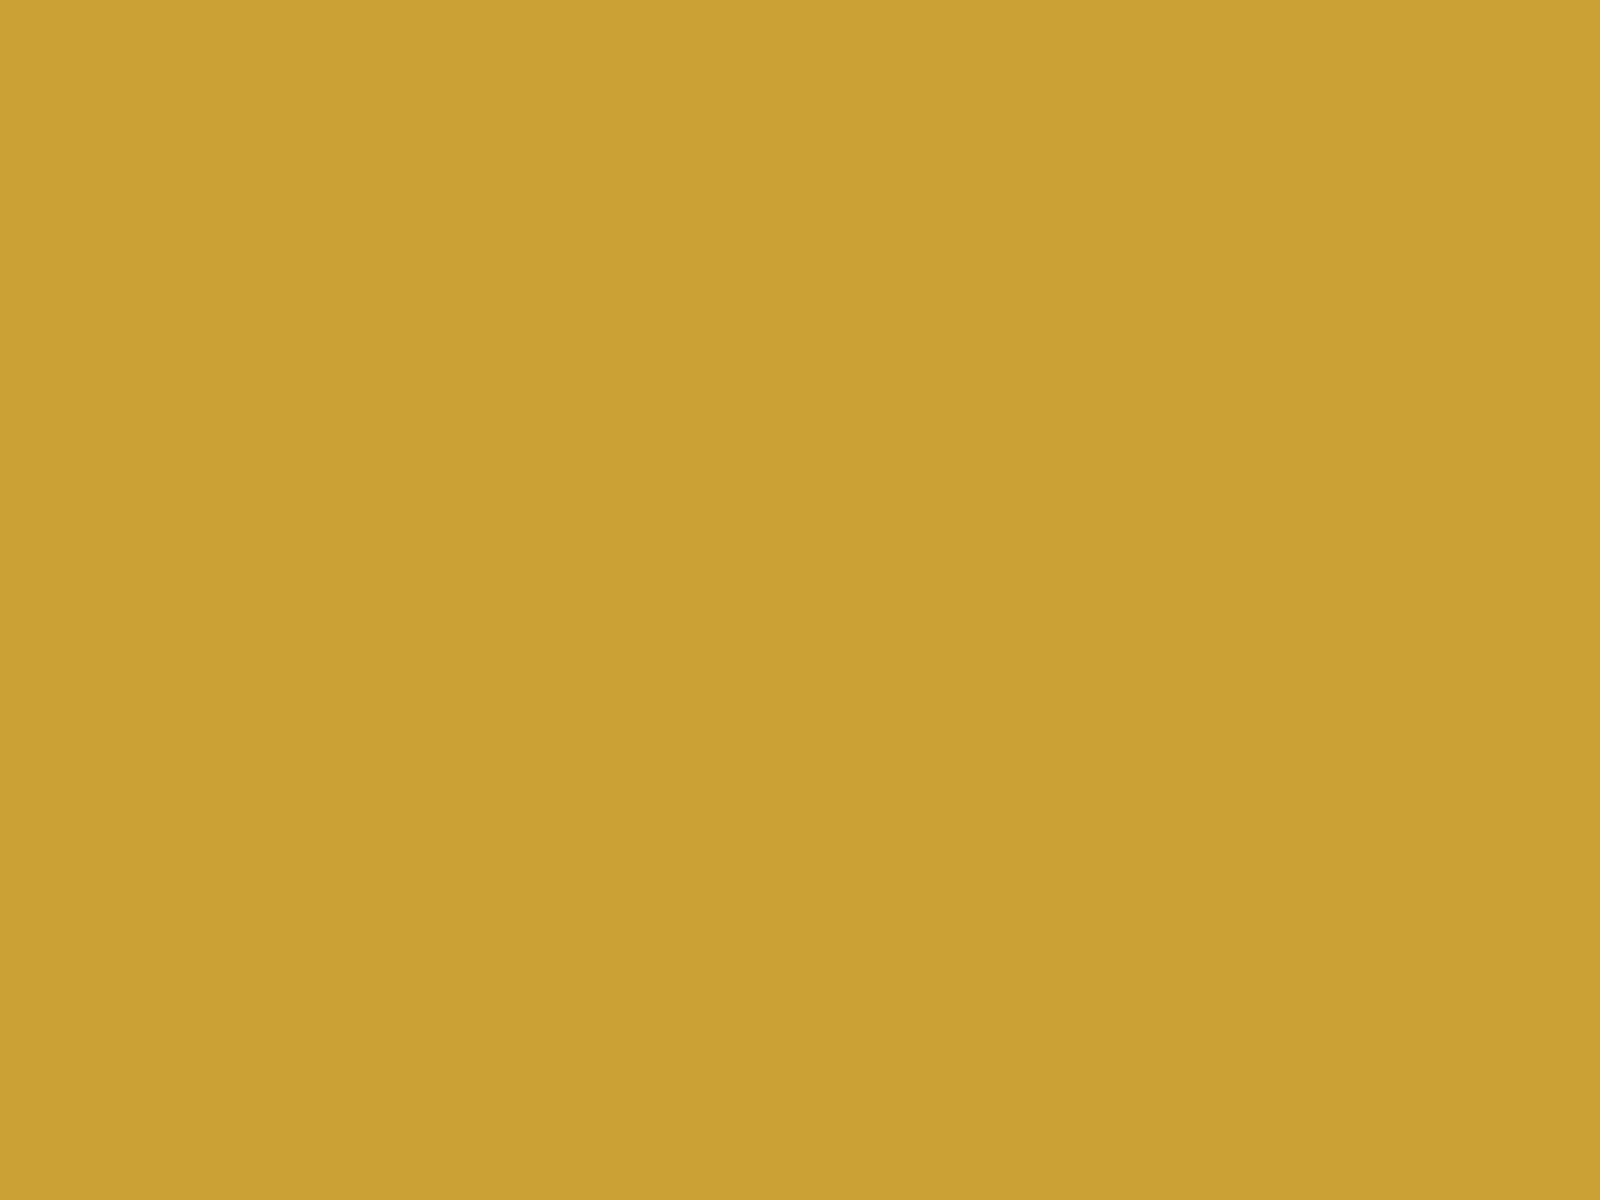 1600x1200 Satin Sheen Gold Solid Color Background